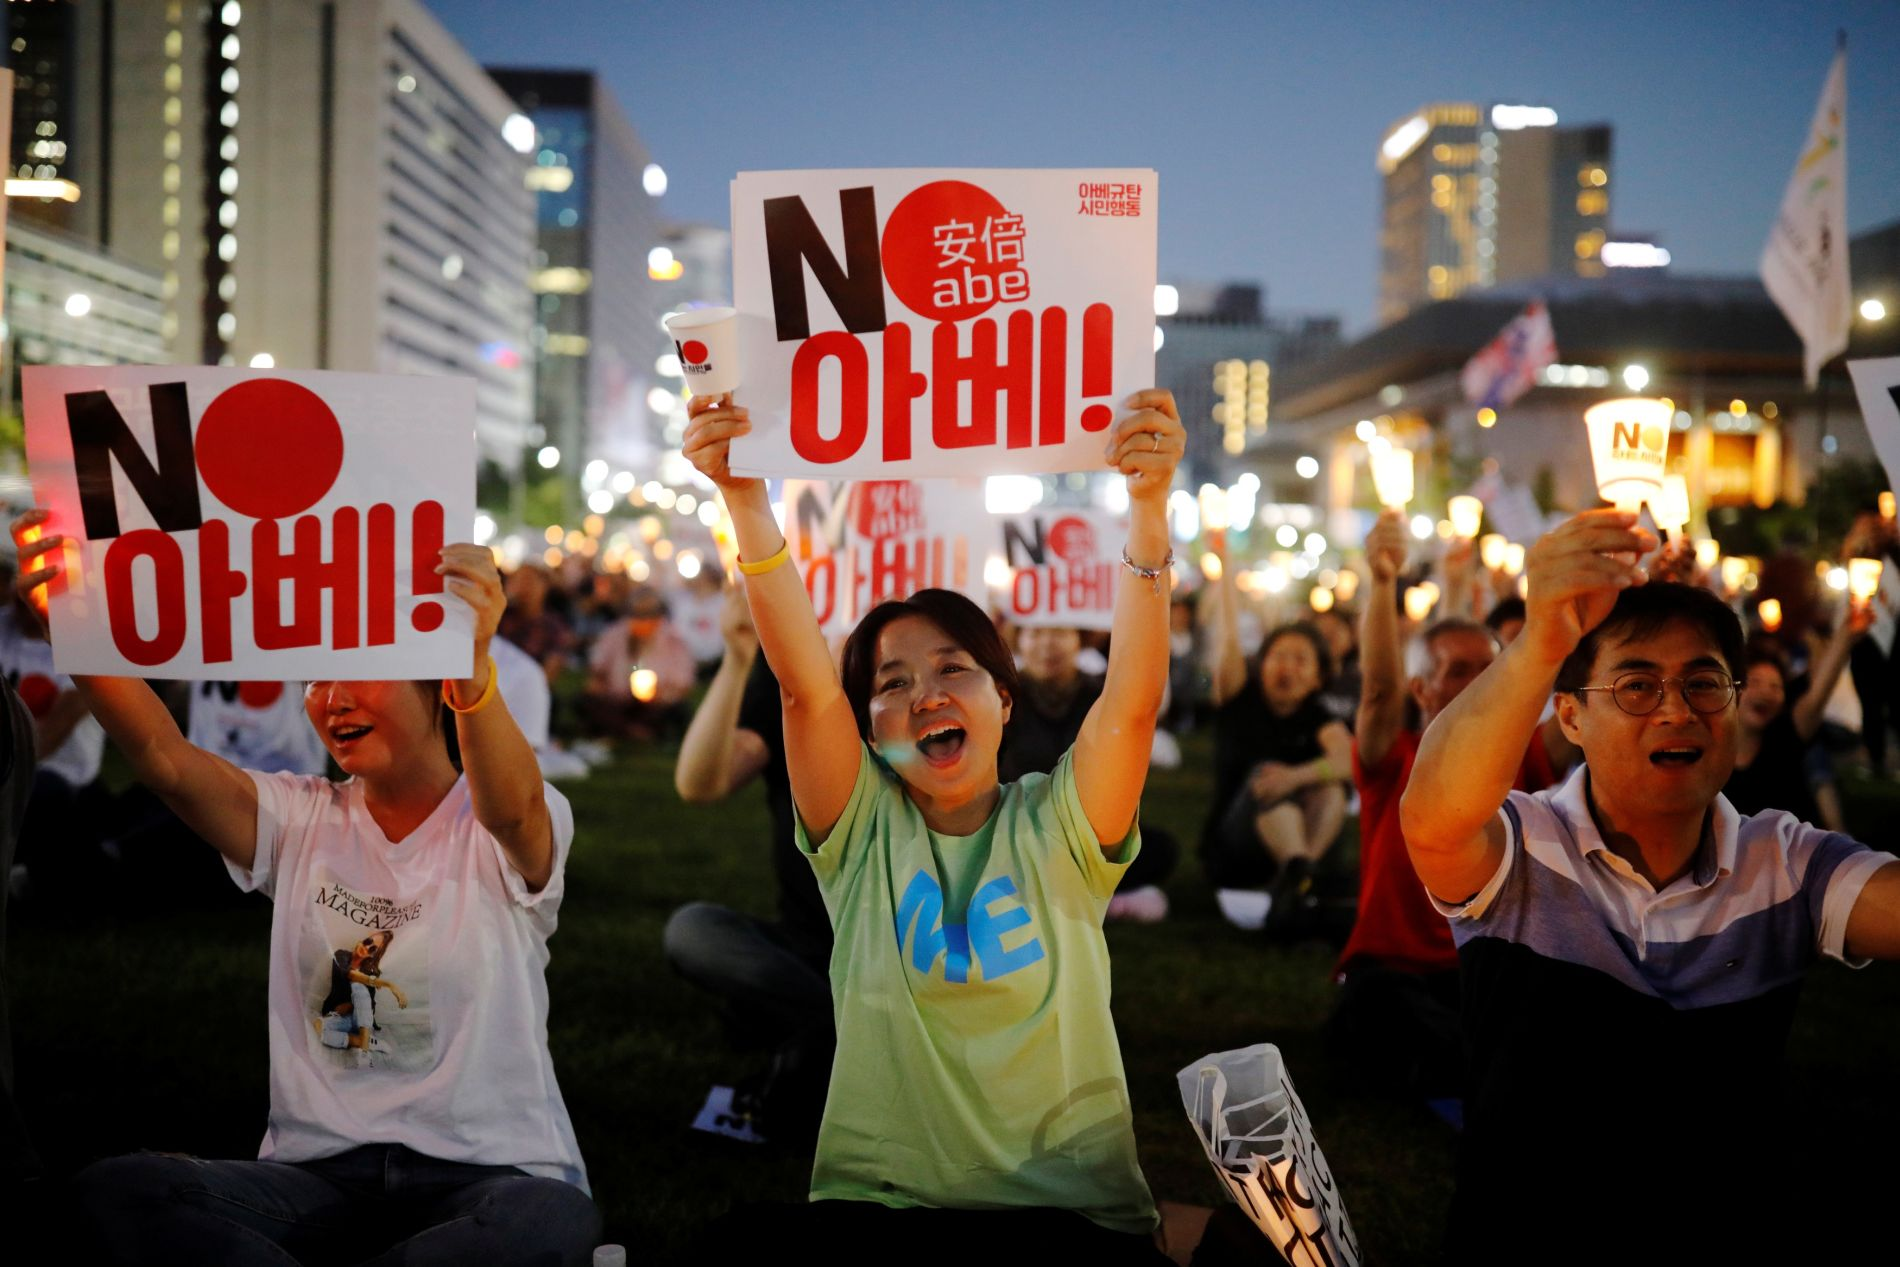 South Korean people chant slogans during an anti-Japan rally in Seoul